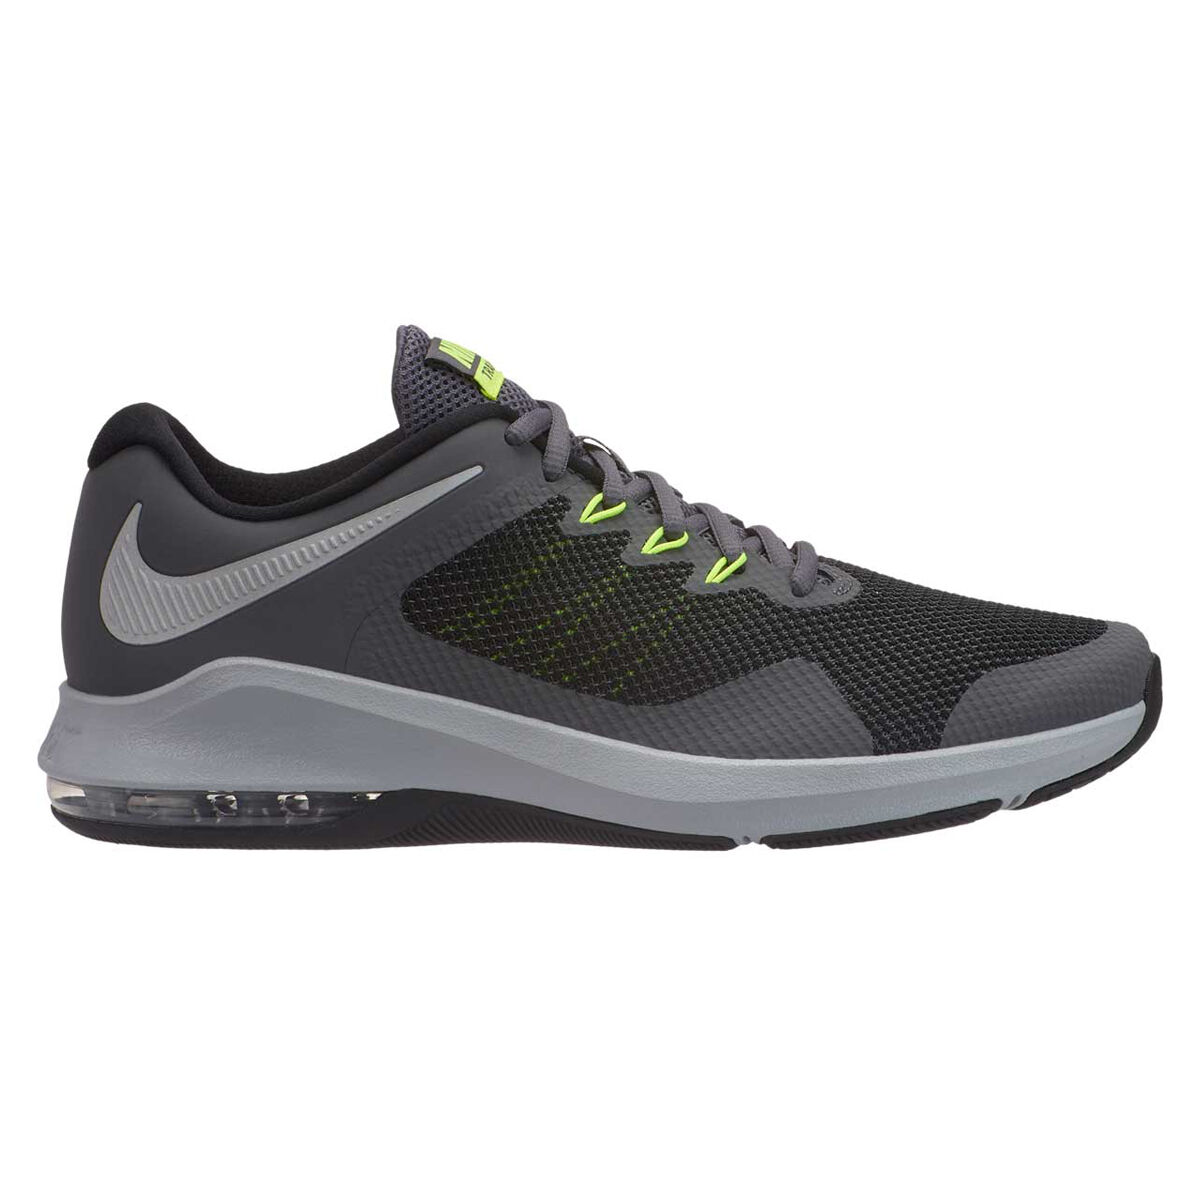 NIKE AIR MAX ALPHA TRAINER in grey white men's running Shoes